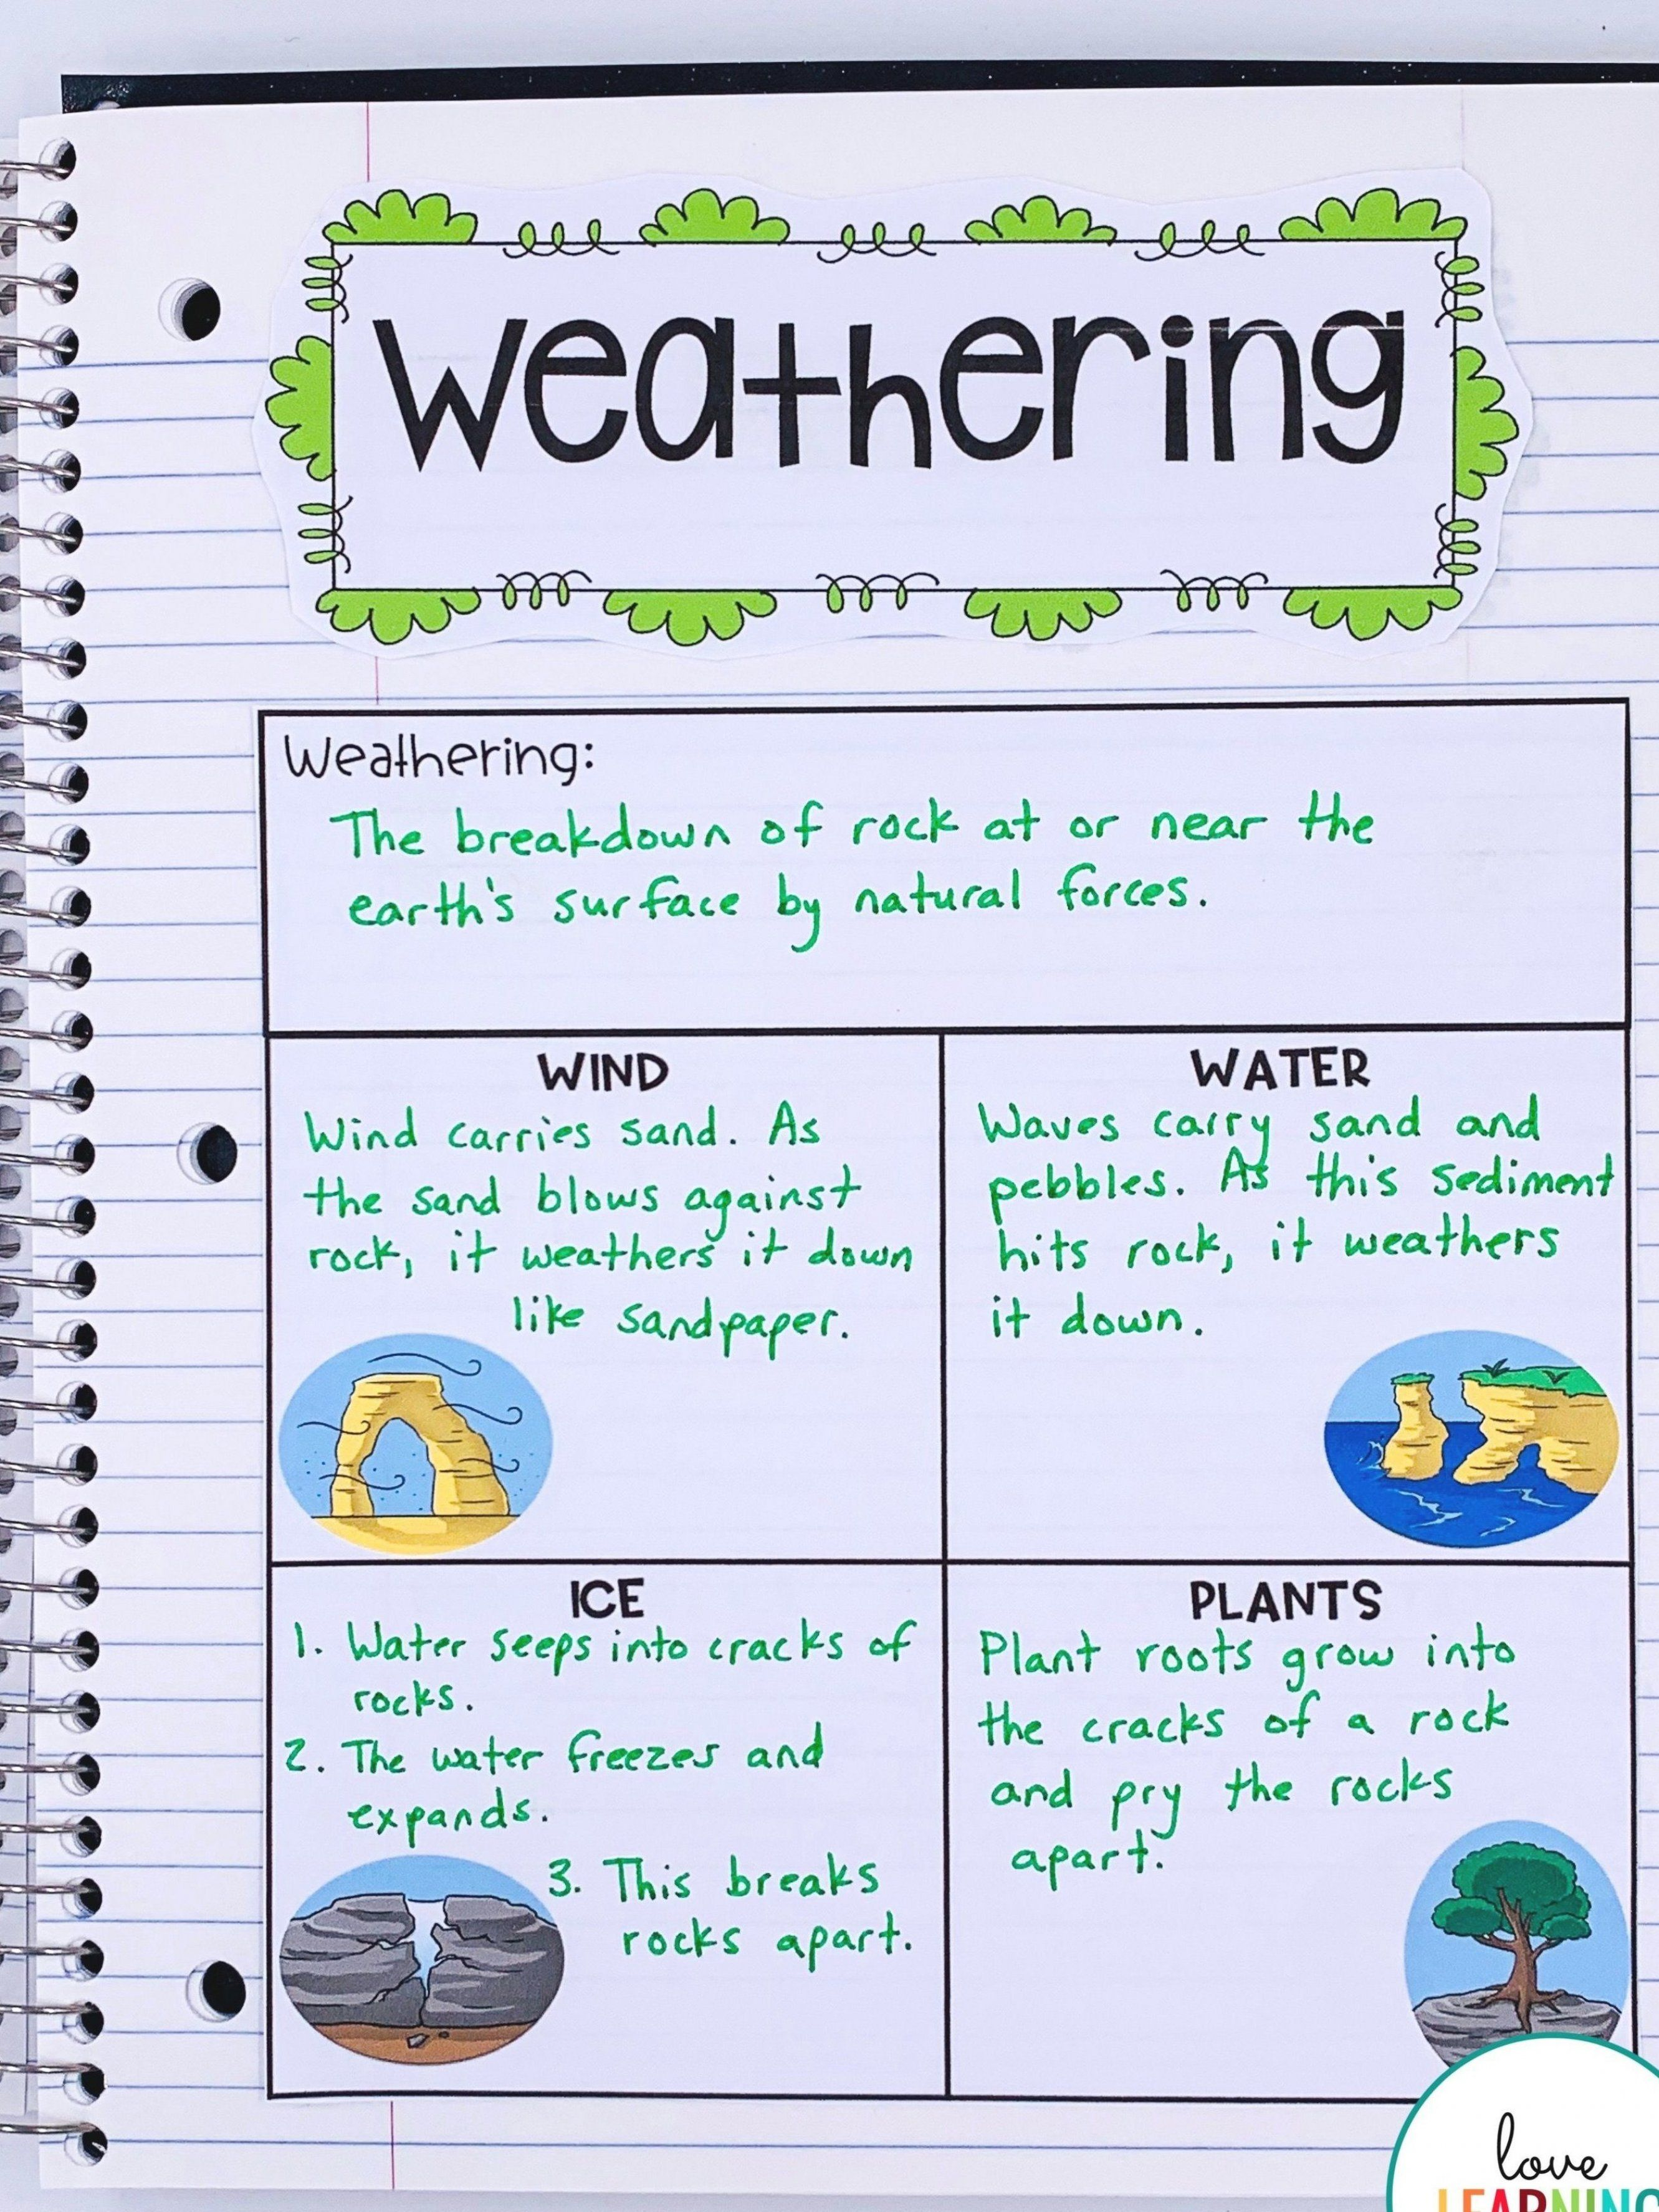 hight resolution of Weathering Park Erosion Worksheet   Printable Worksheets and Activities for  Teachers